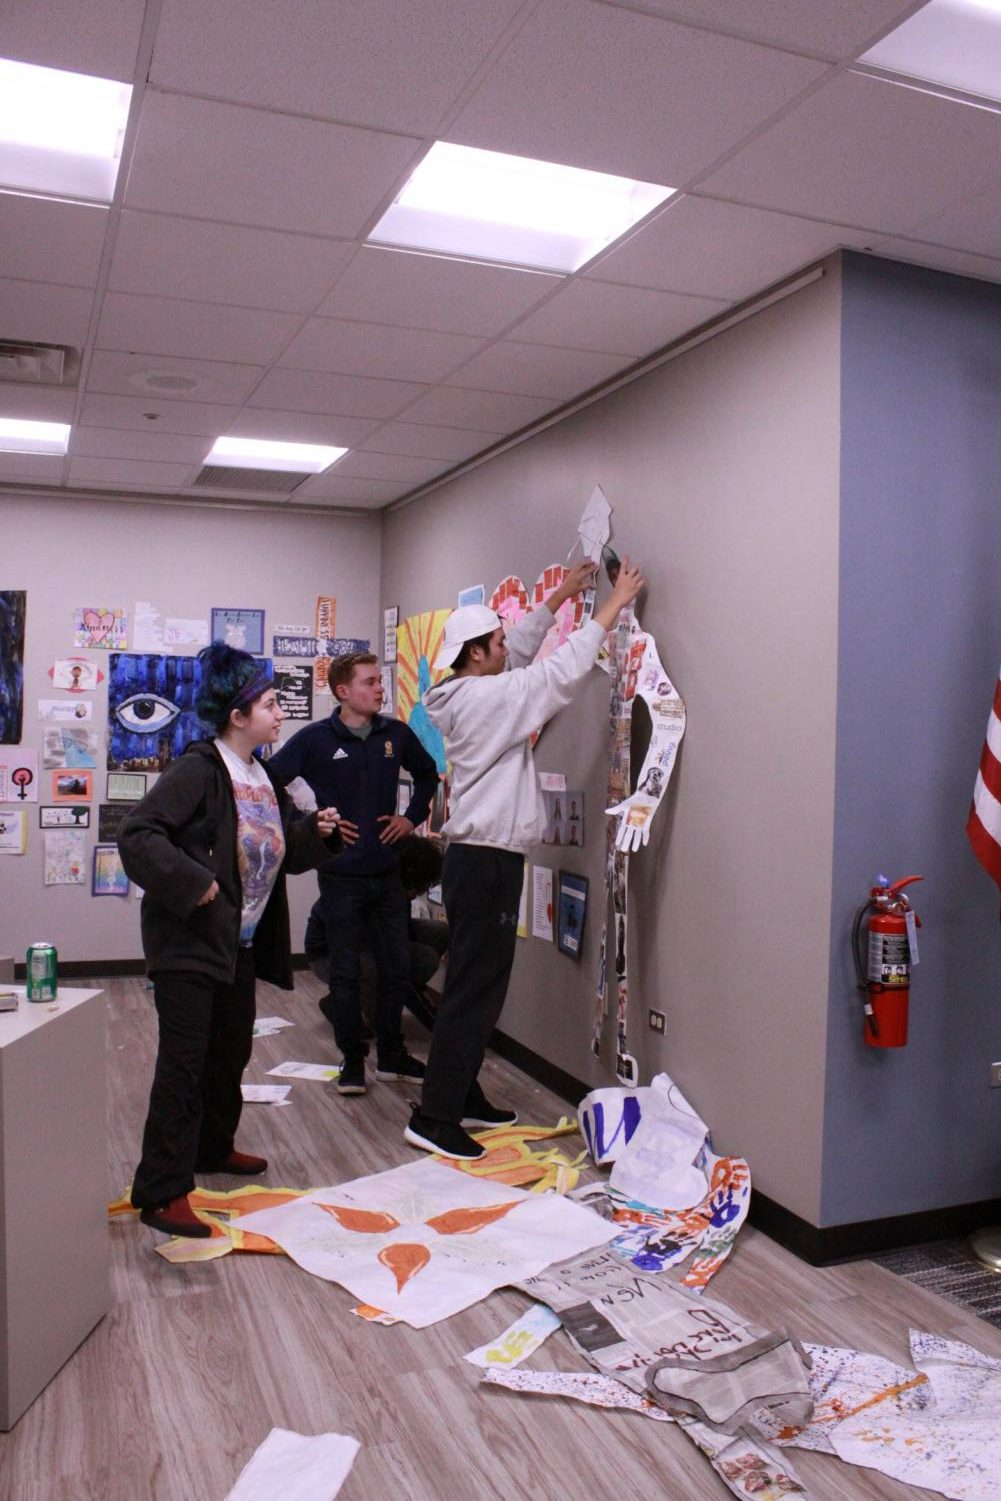 Seniors part of the Senior Summit design committee work together to hang up the artwork in the gallery.  According to senior Colin McCarthy (middle), their goal was to create a united collage from all art submissions.